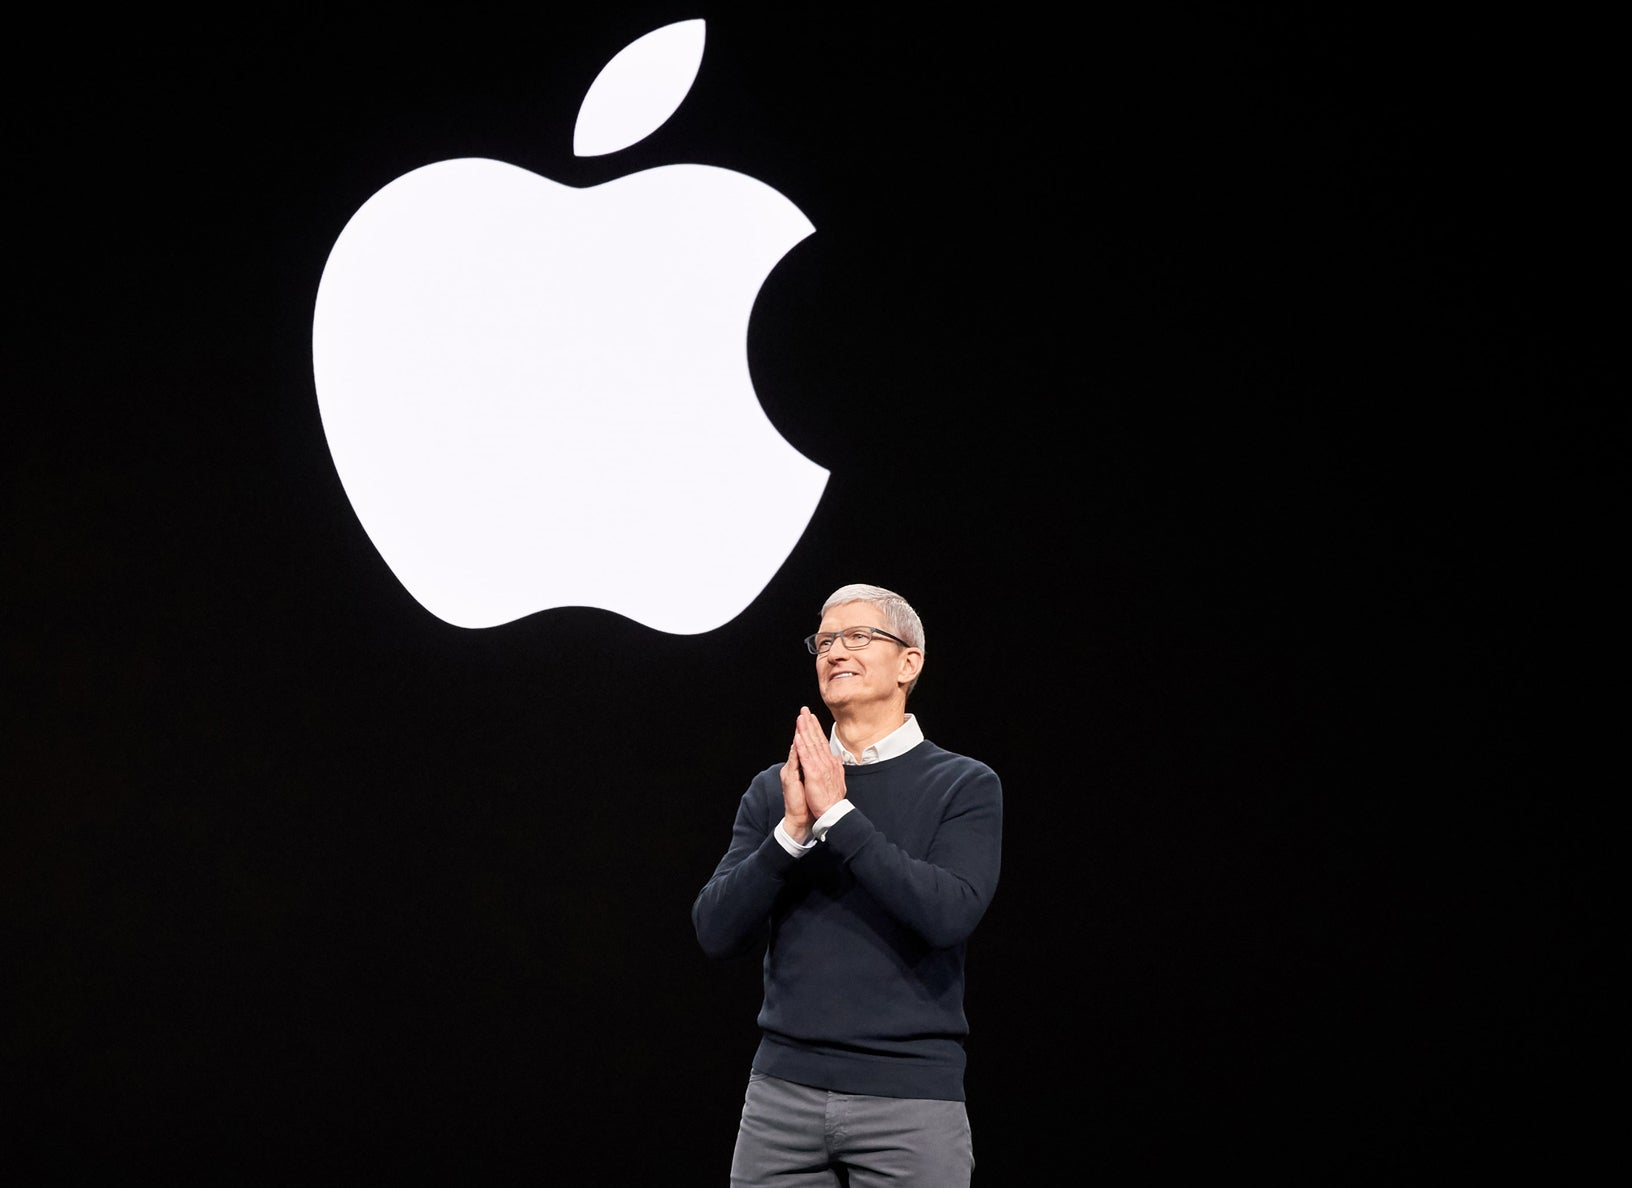 Tim Cook on stage in front of an Apple logo